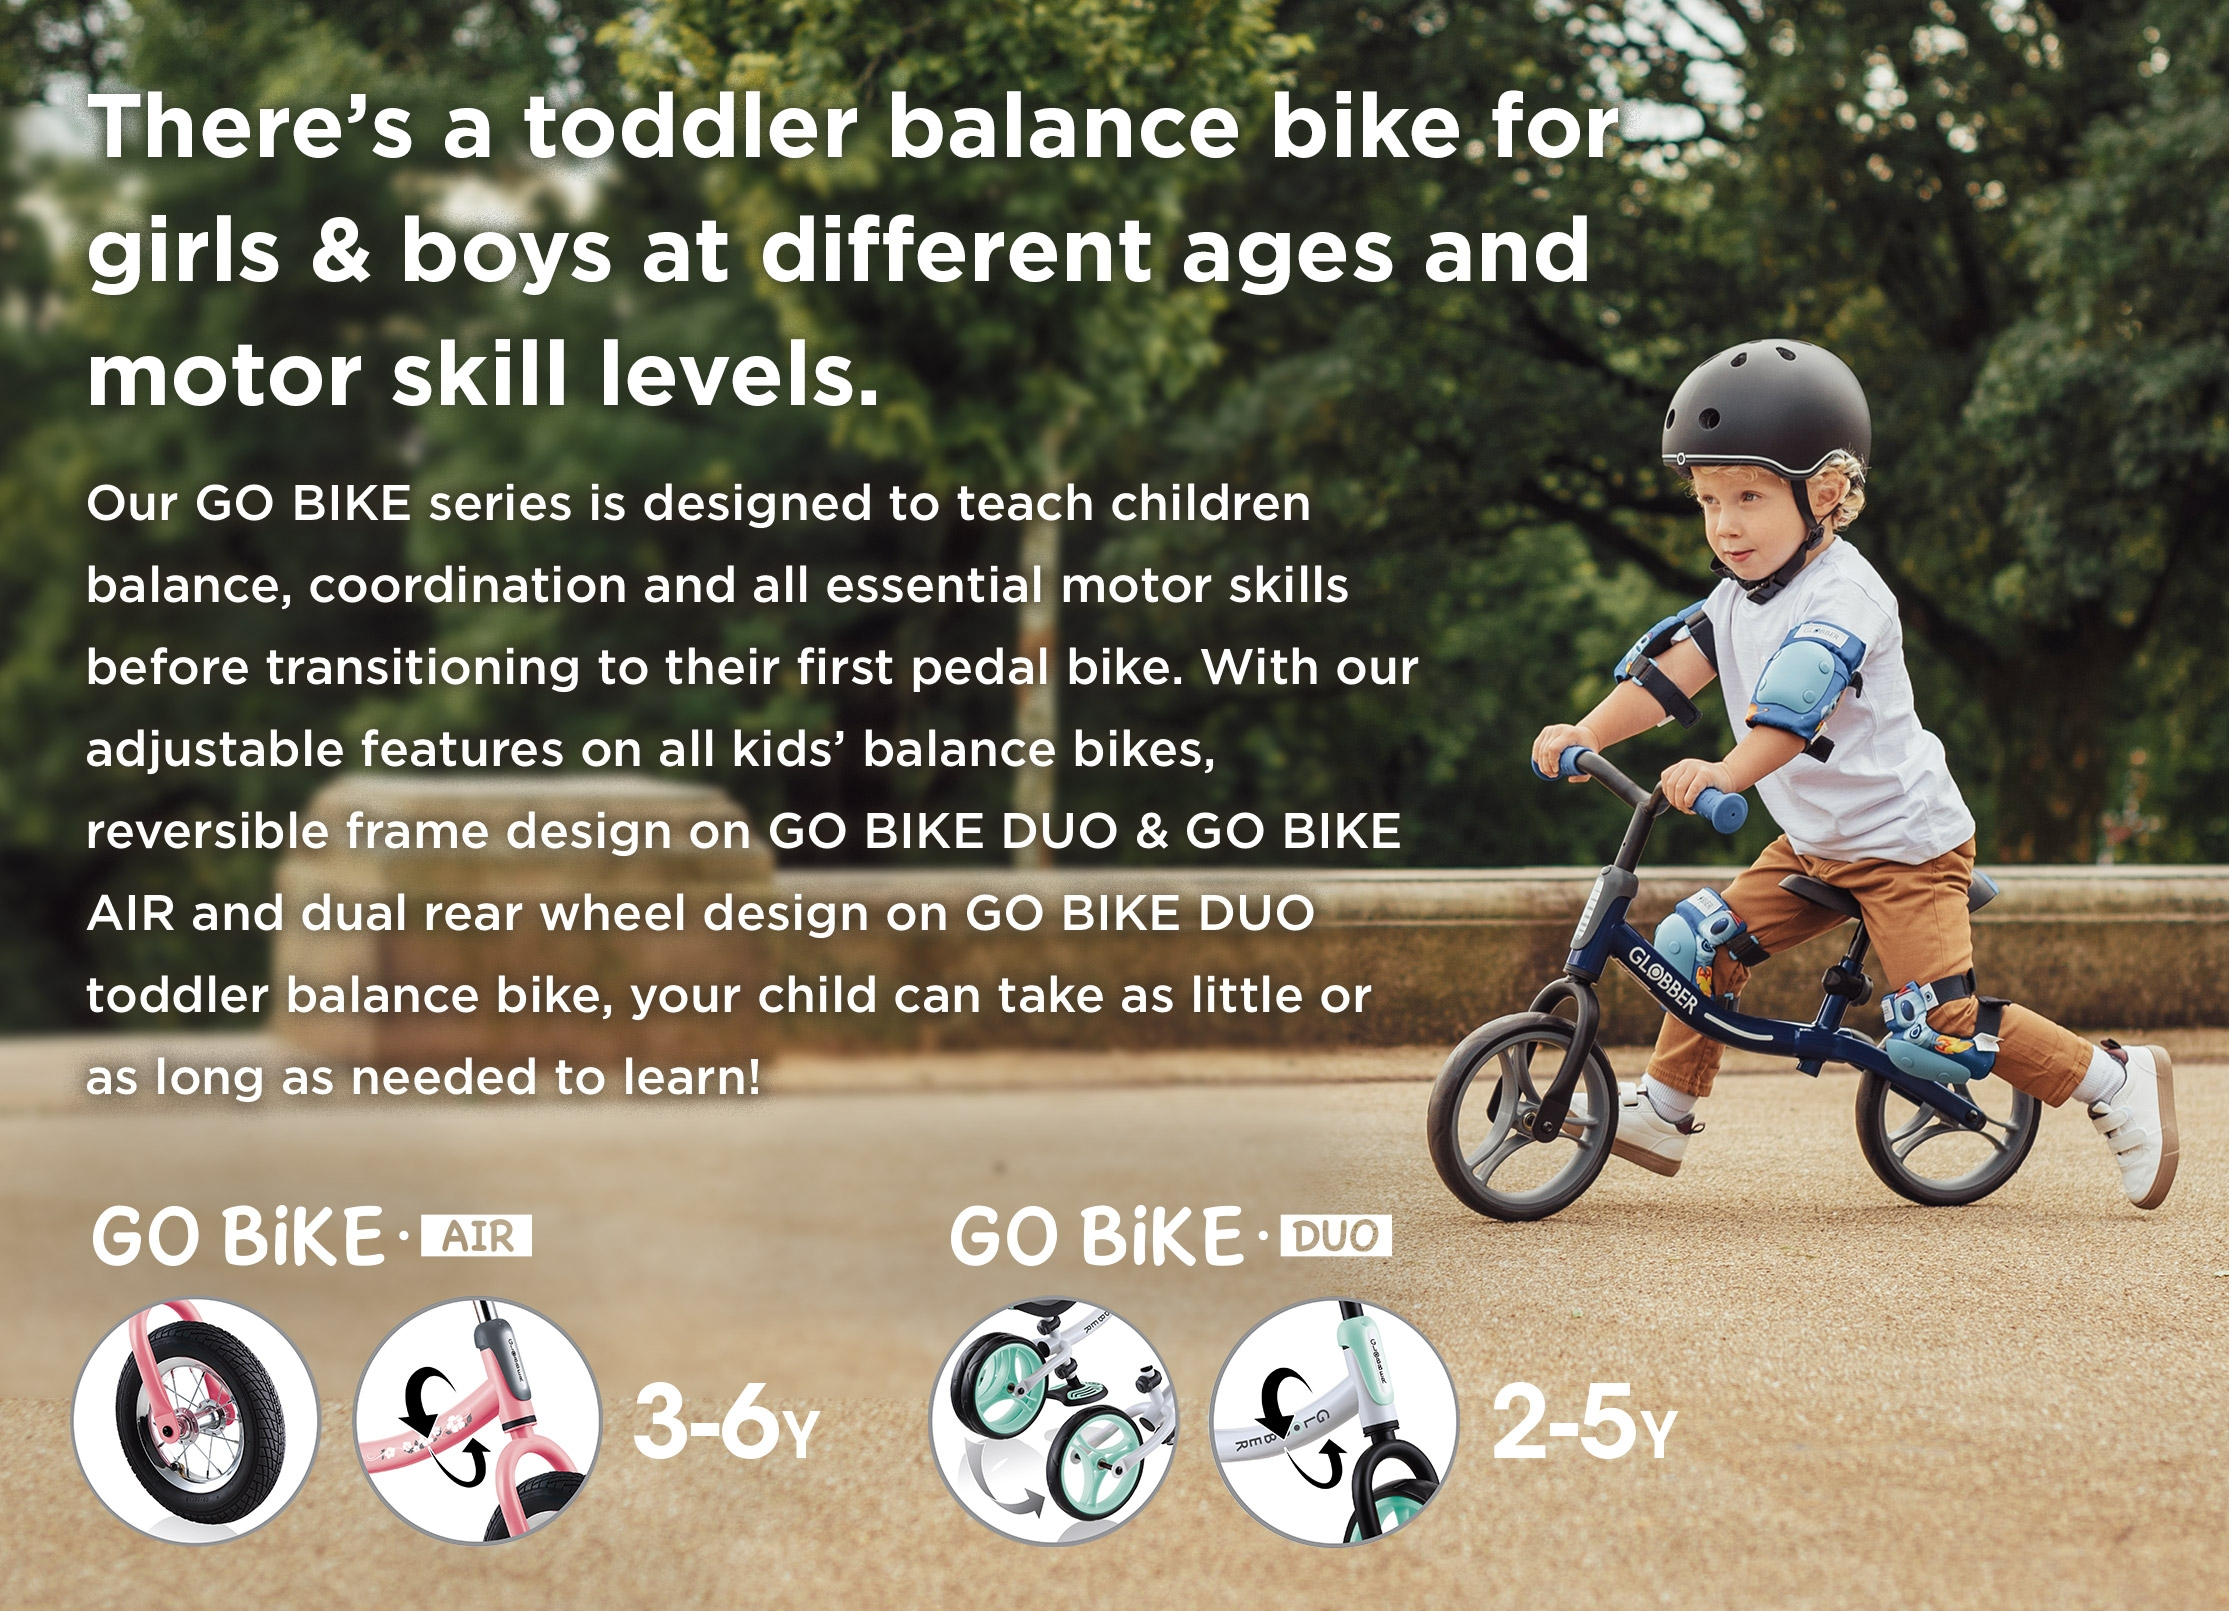 GO-BIKE-toddler-balance-bike-for-girls-and-boys-with-adjustable-features